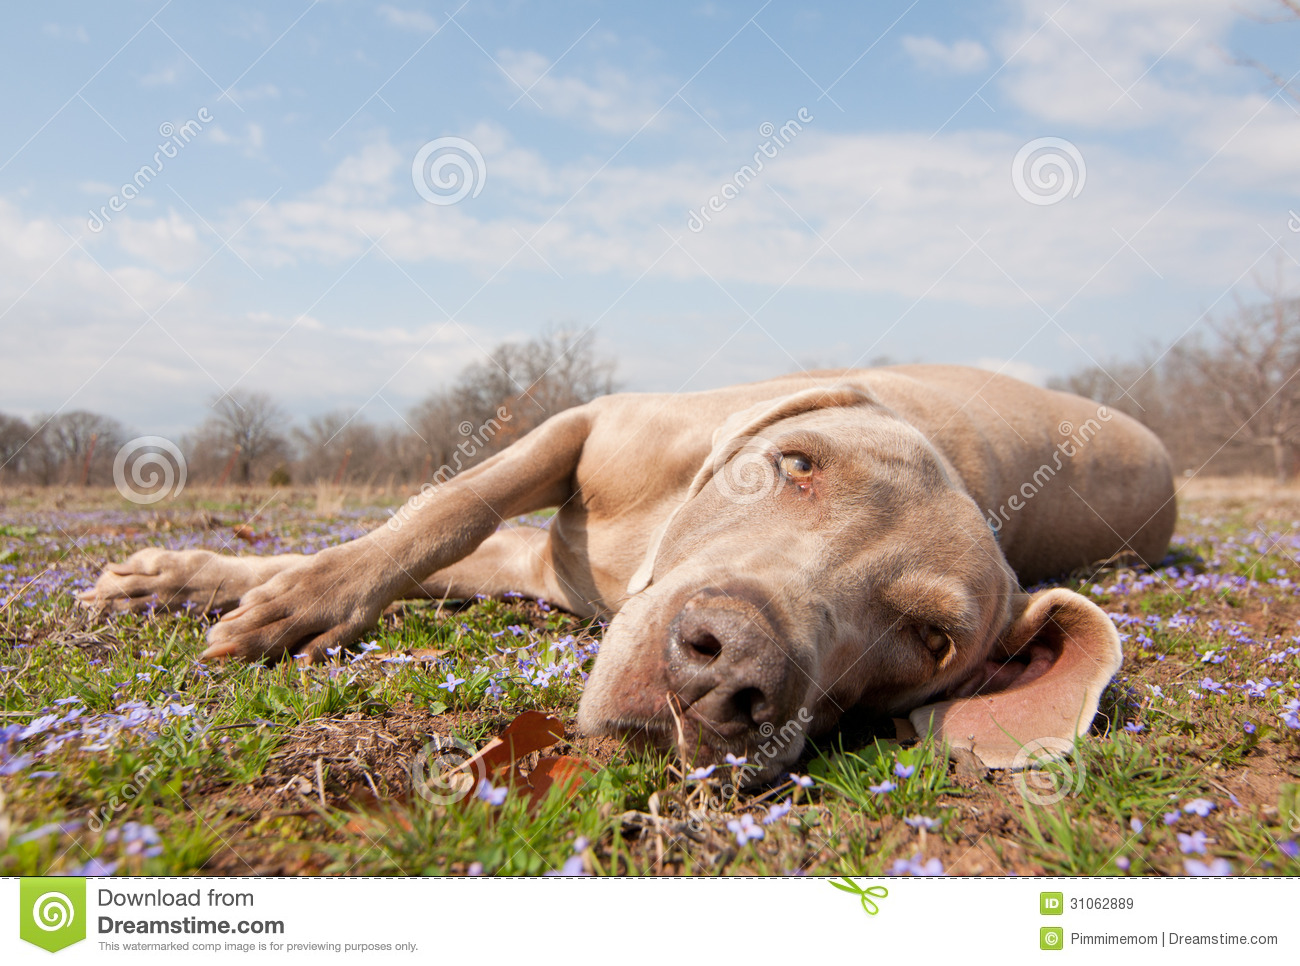 Comical image of a Weimaraner dog being lazy